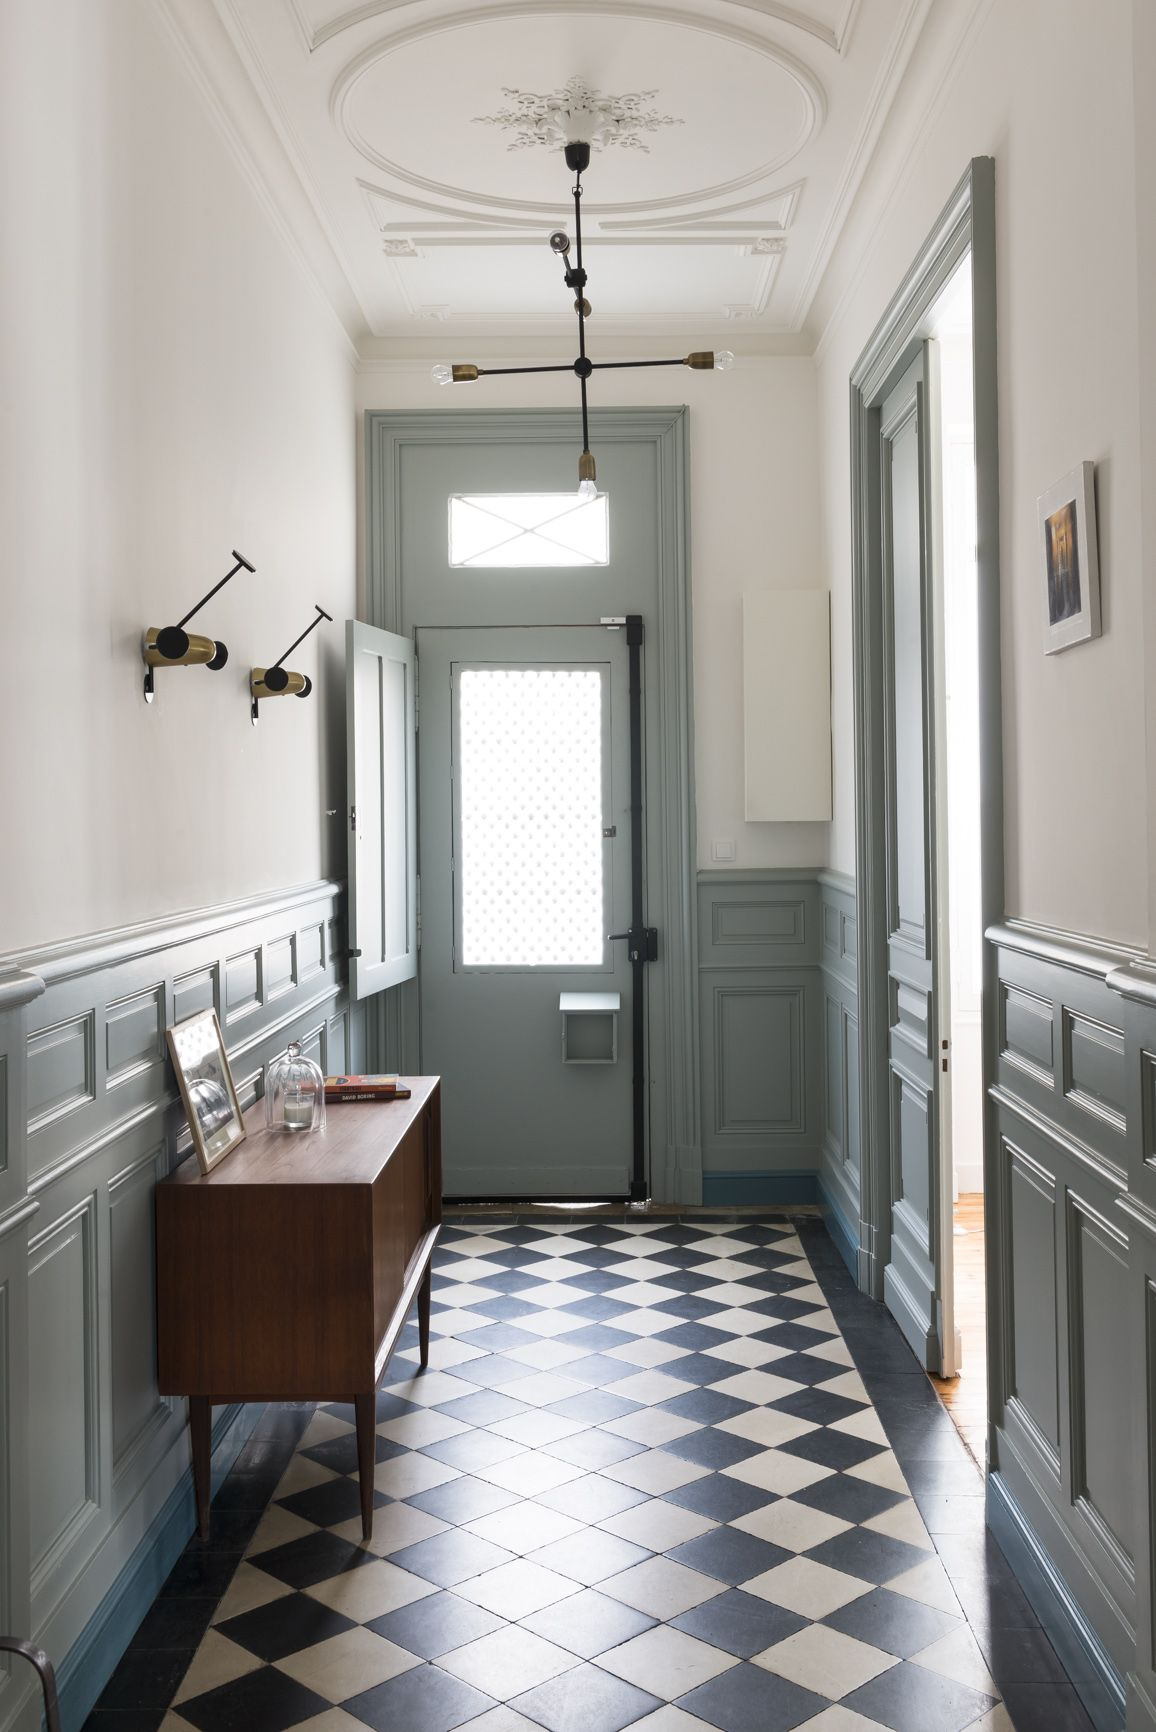 Best 25 maison bourgeoise ideas on pinterest boiseries for Carrelage au plafond